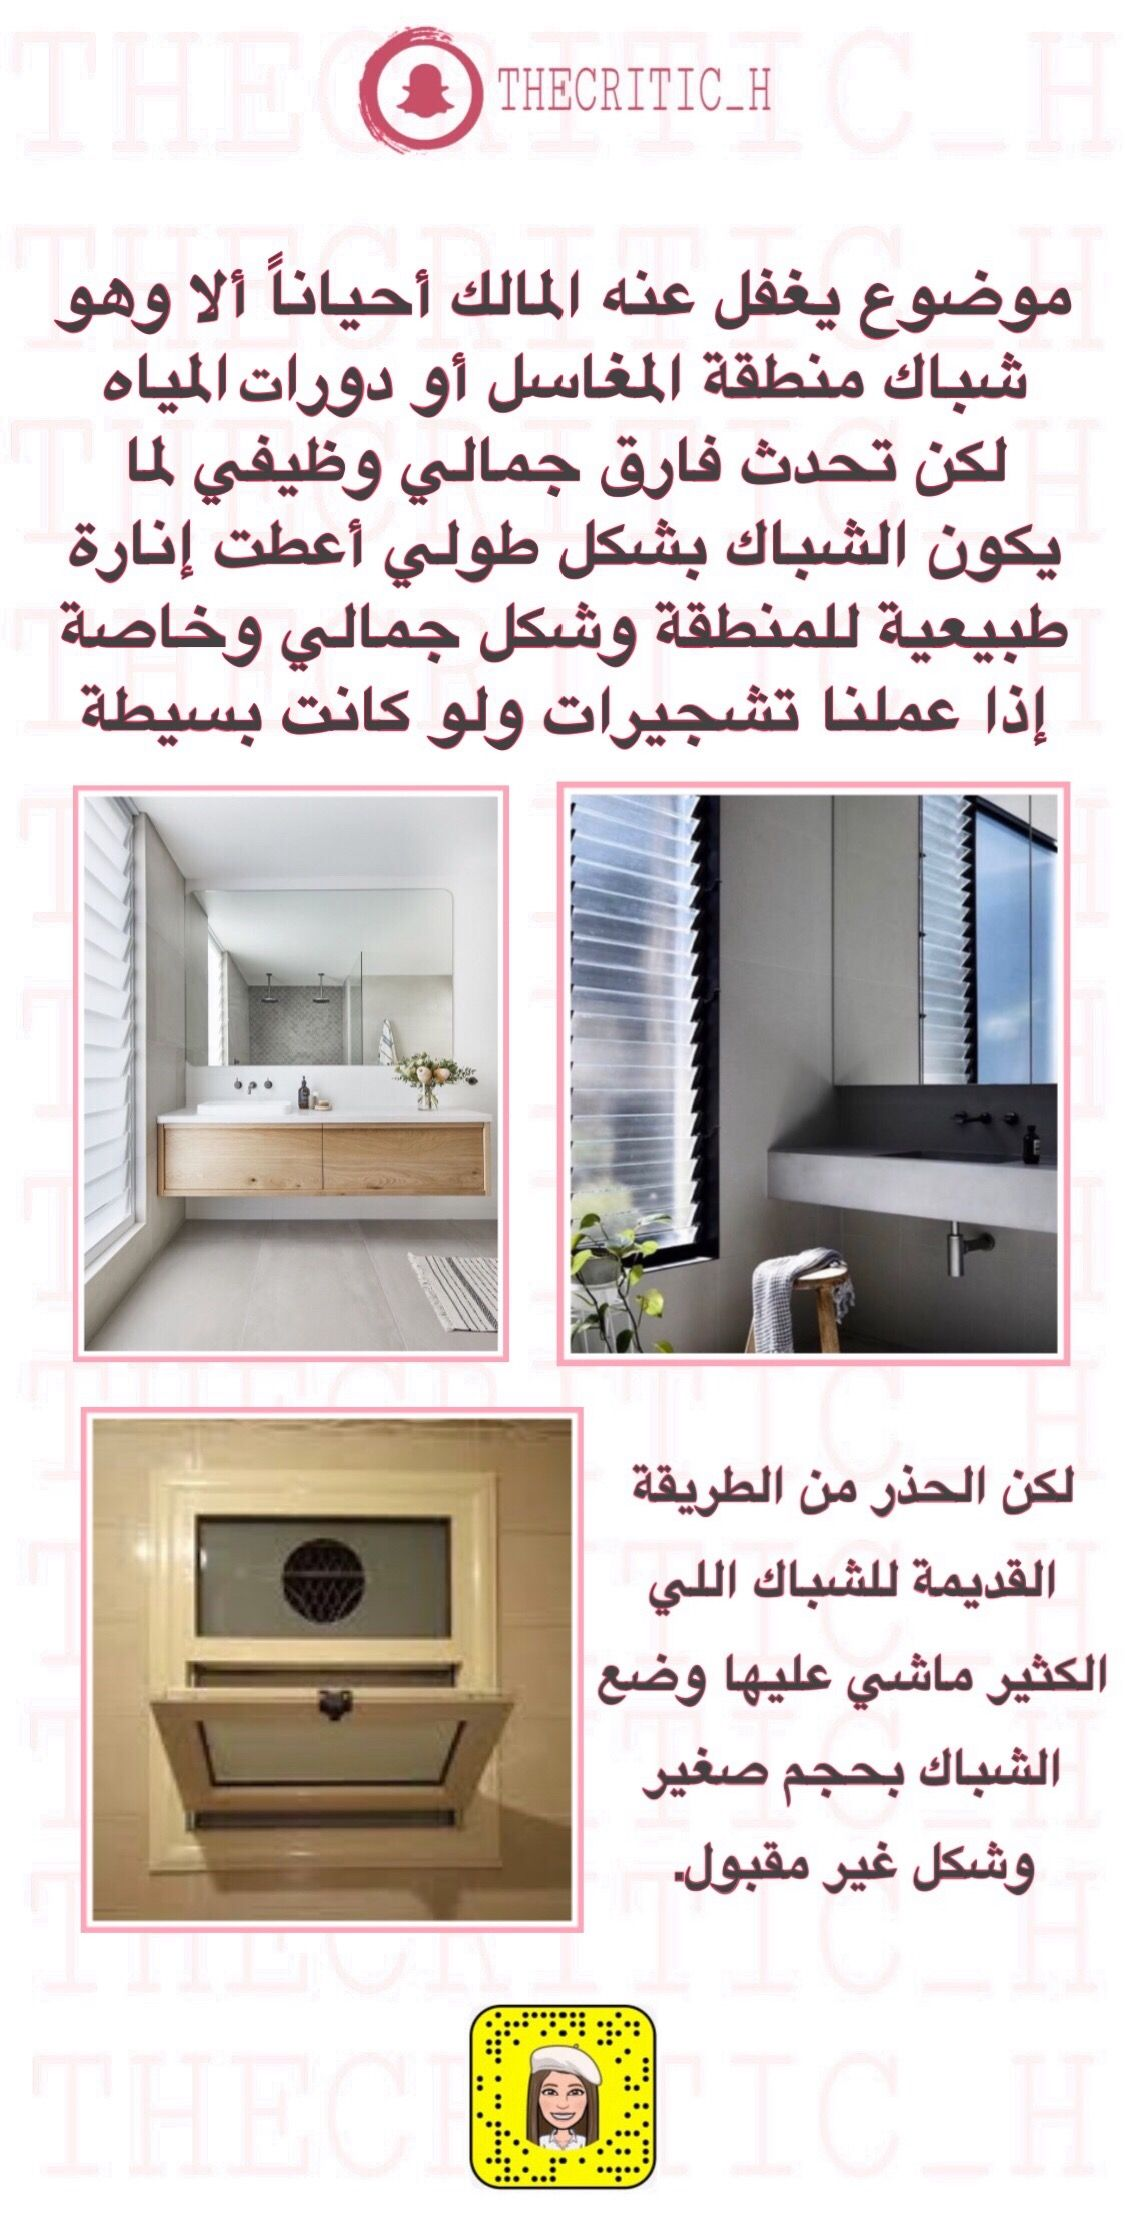 نوافذ دورات المياه In 2021 Bathroom Remodel Designs Home Decor Furniture Closet Decor